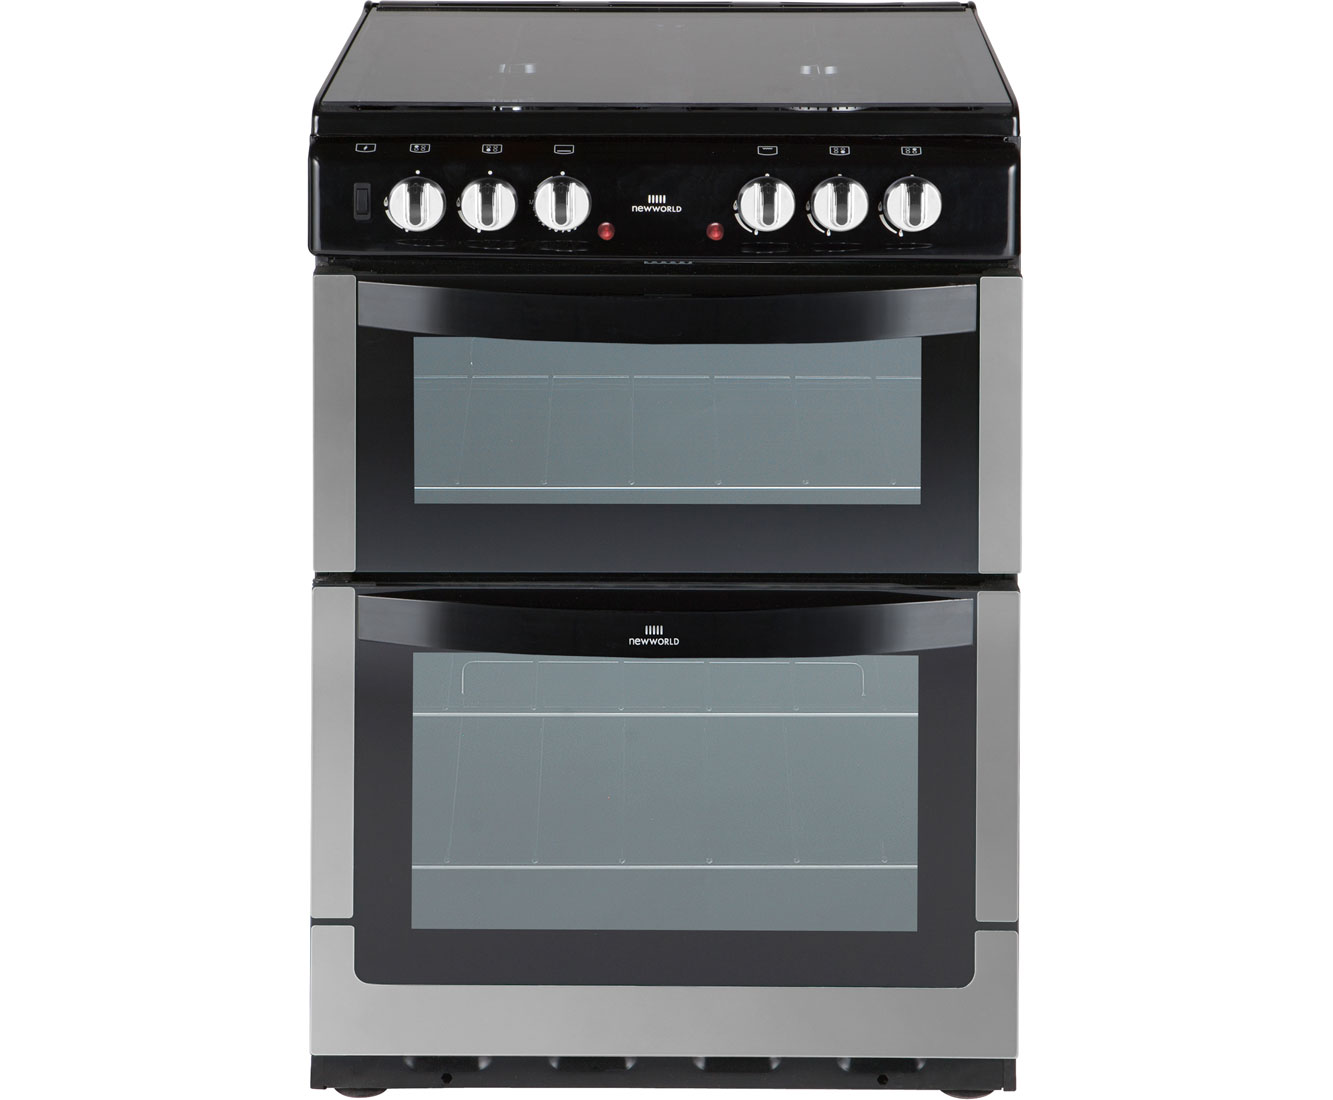 Newworld NW601DFDOL Dual Fuel Cooker - Stainless Steel